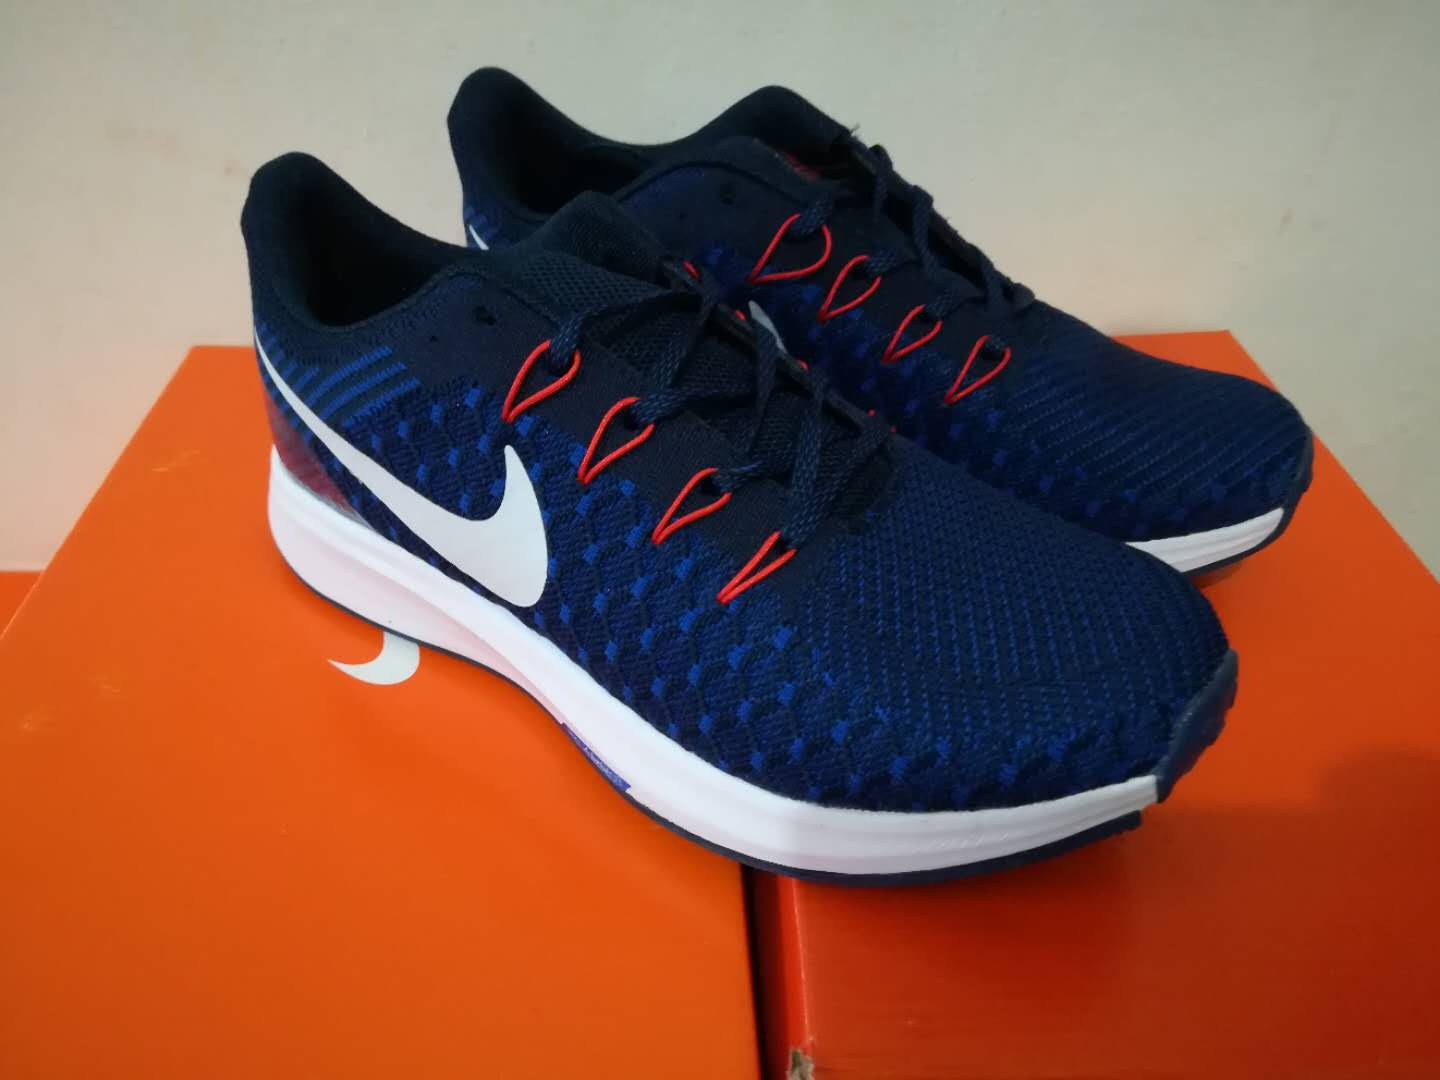 Nike Flyknit Lunar 2 iD Deep Blue Red Shoes